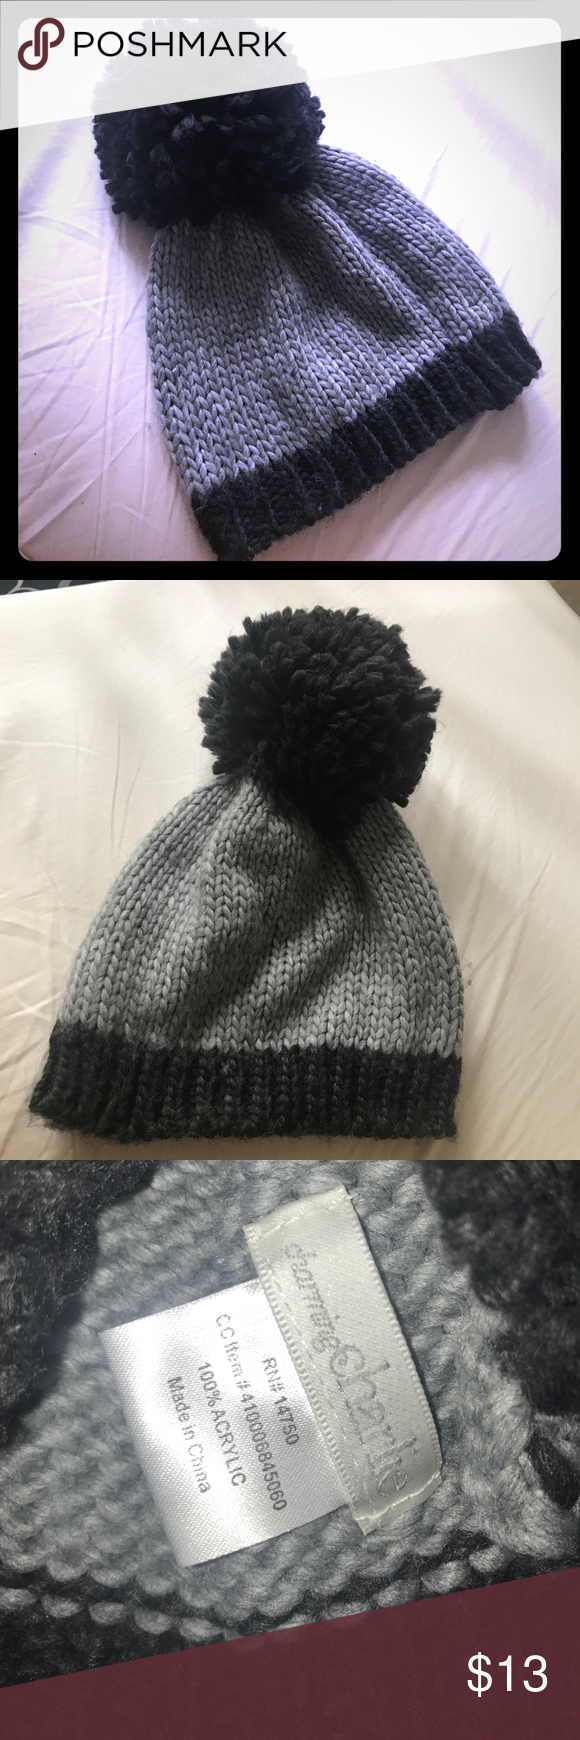 Black u Gray Poof Winter Beanie Gray Winter and Customer support